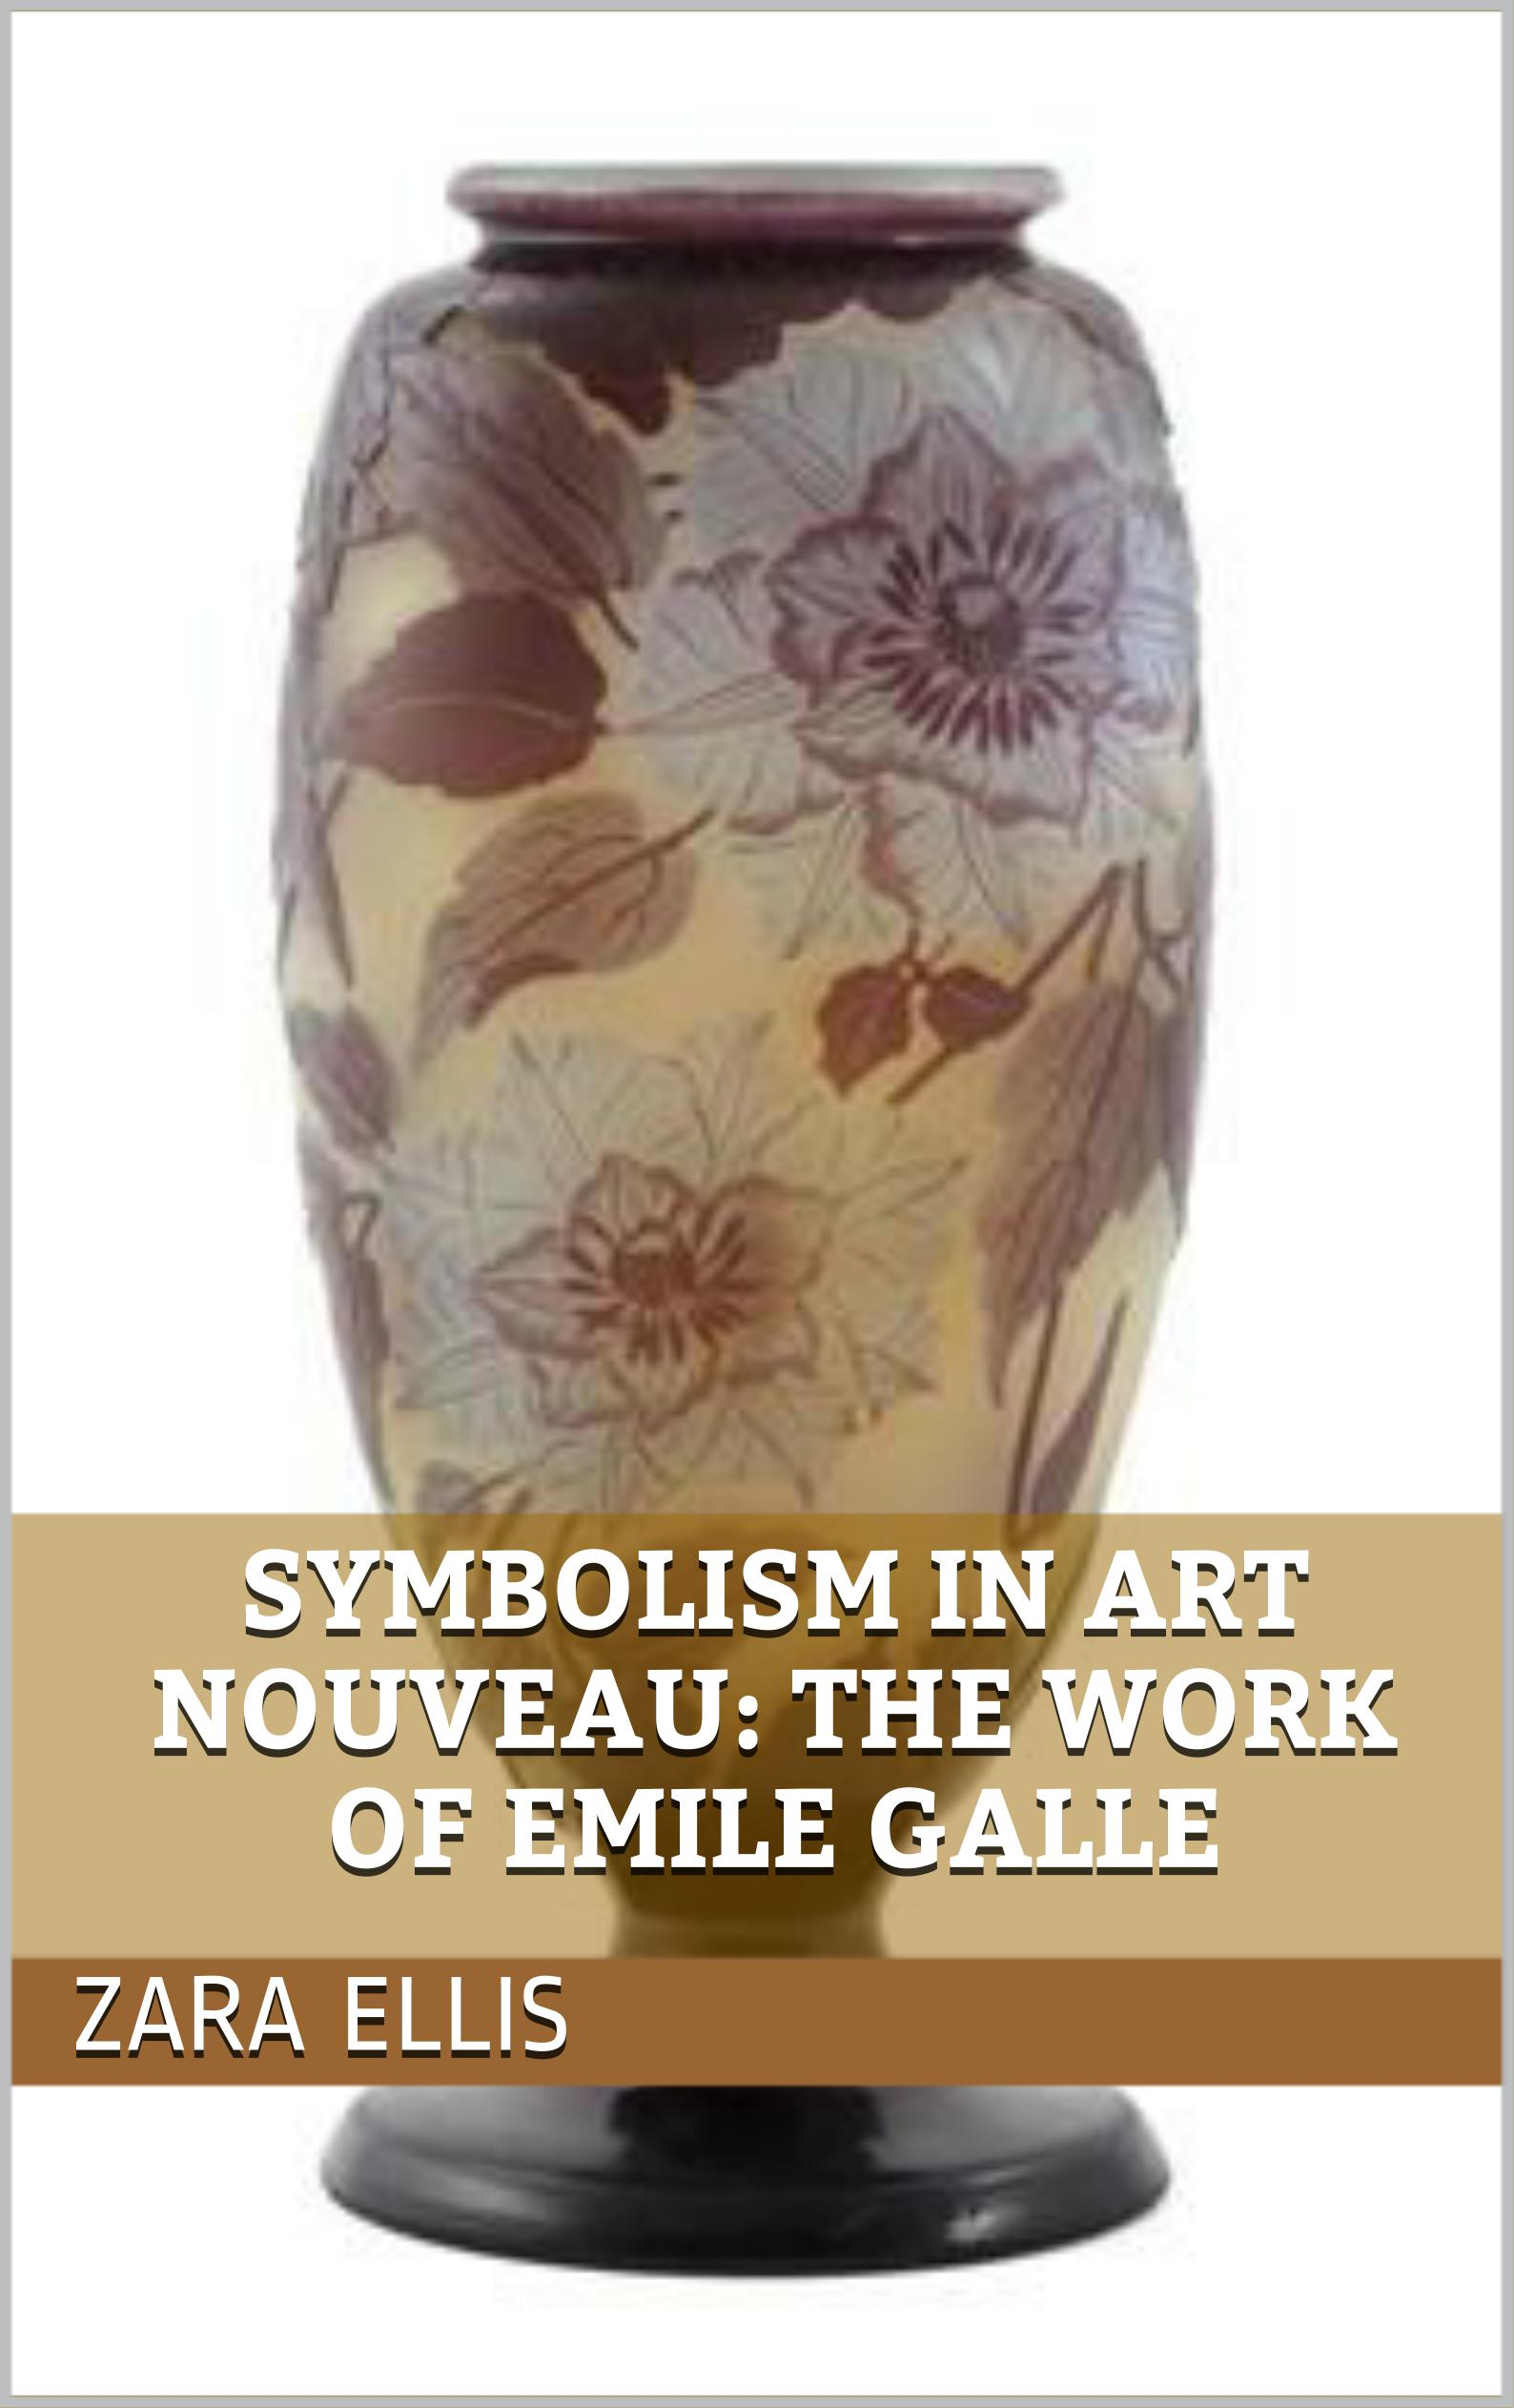 Symbolism in Art Nouveau: The Work of Emile Galle